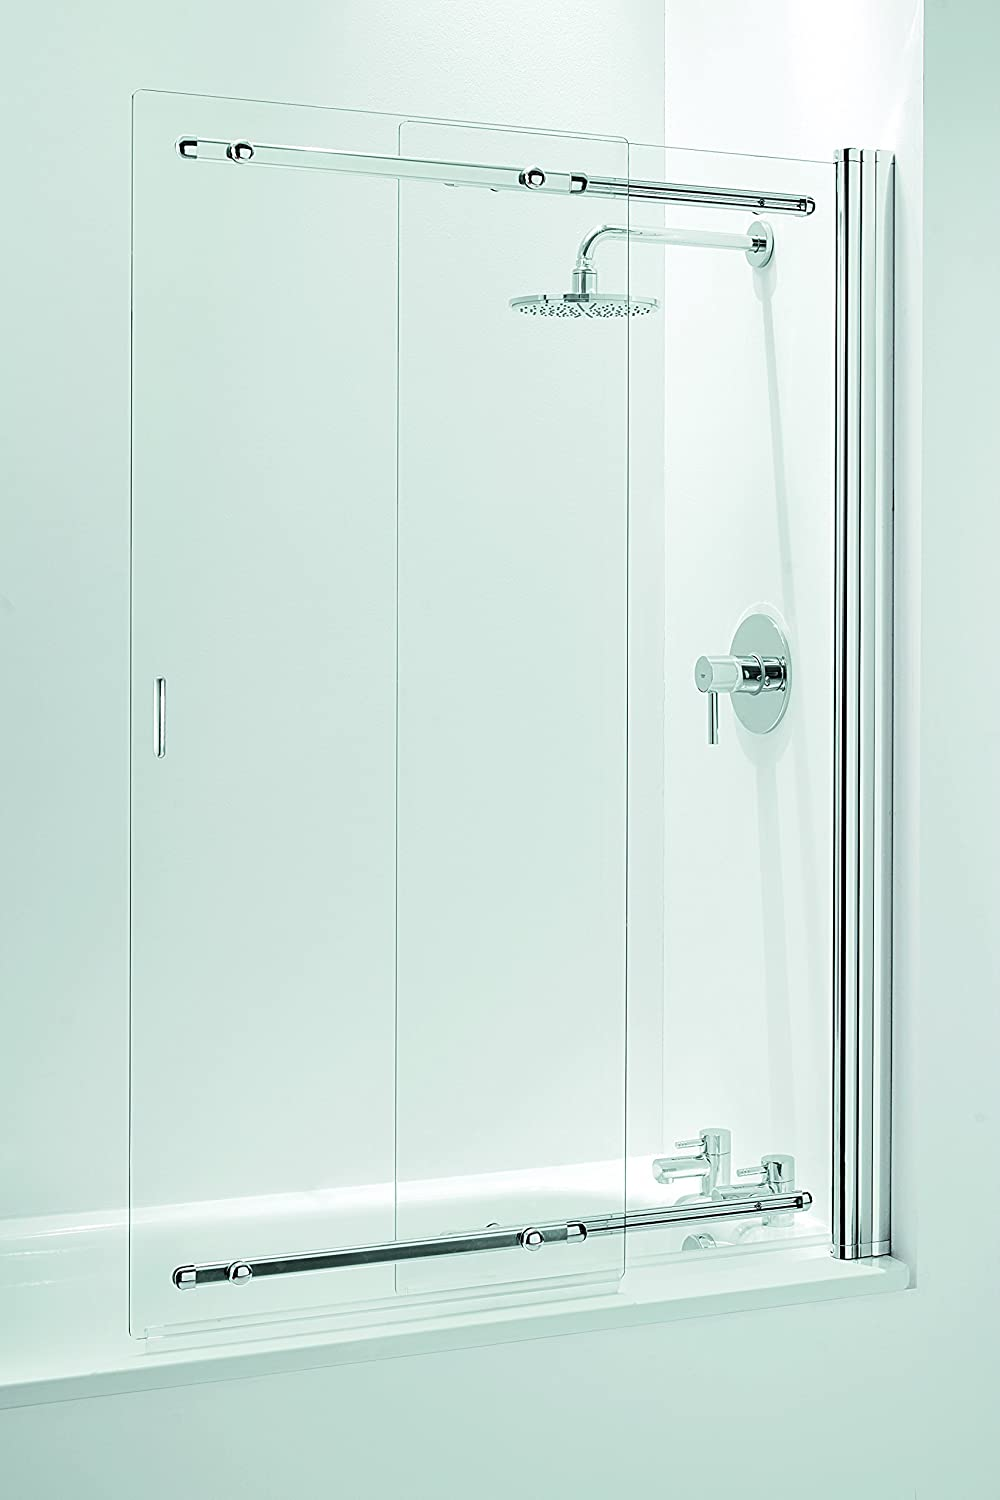 Coram Showers SSL2105CUC - 1400Mm X 650-1065Mm 2-Panel Deslizante Mampara De Baño De 5 Mm De Espesor De Cristal Claro - Chrome: Amazon.es: Bricolaje y herramientas